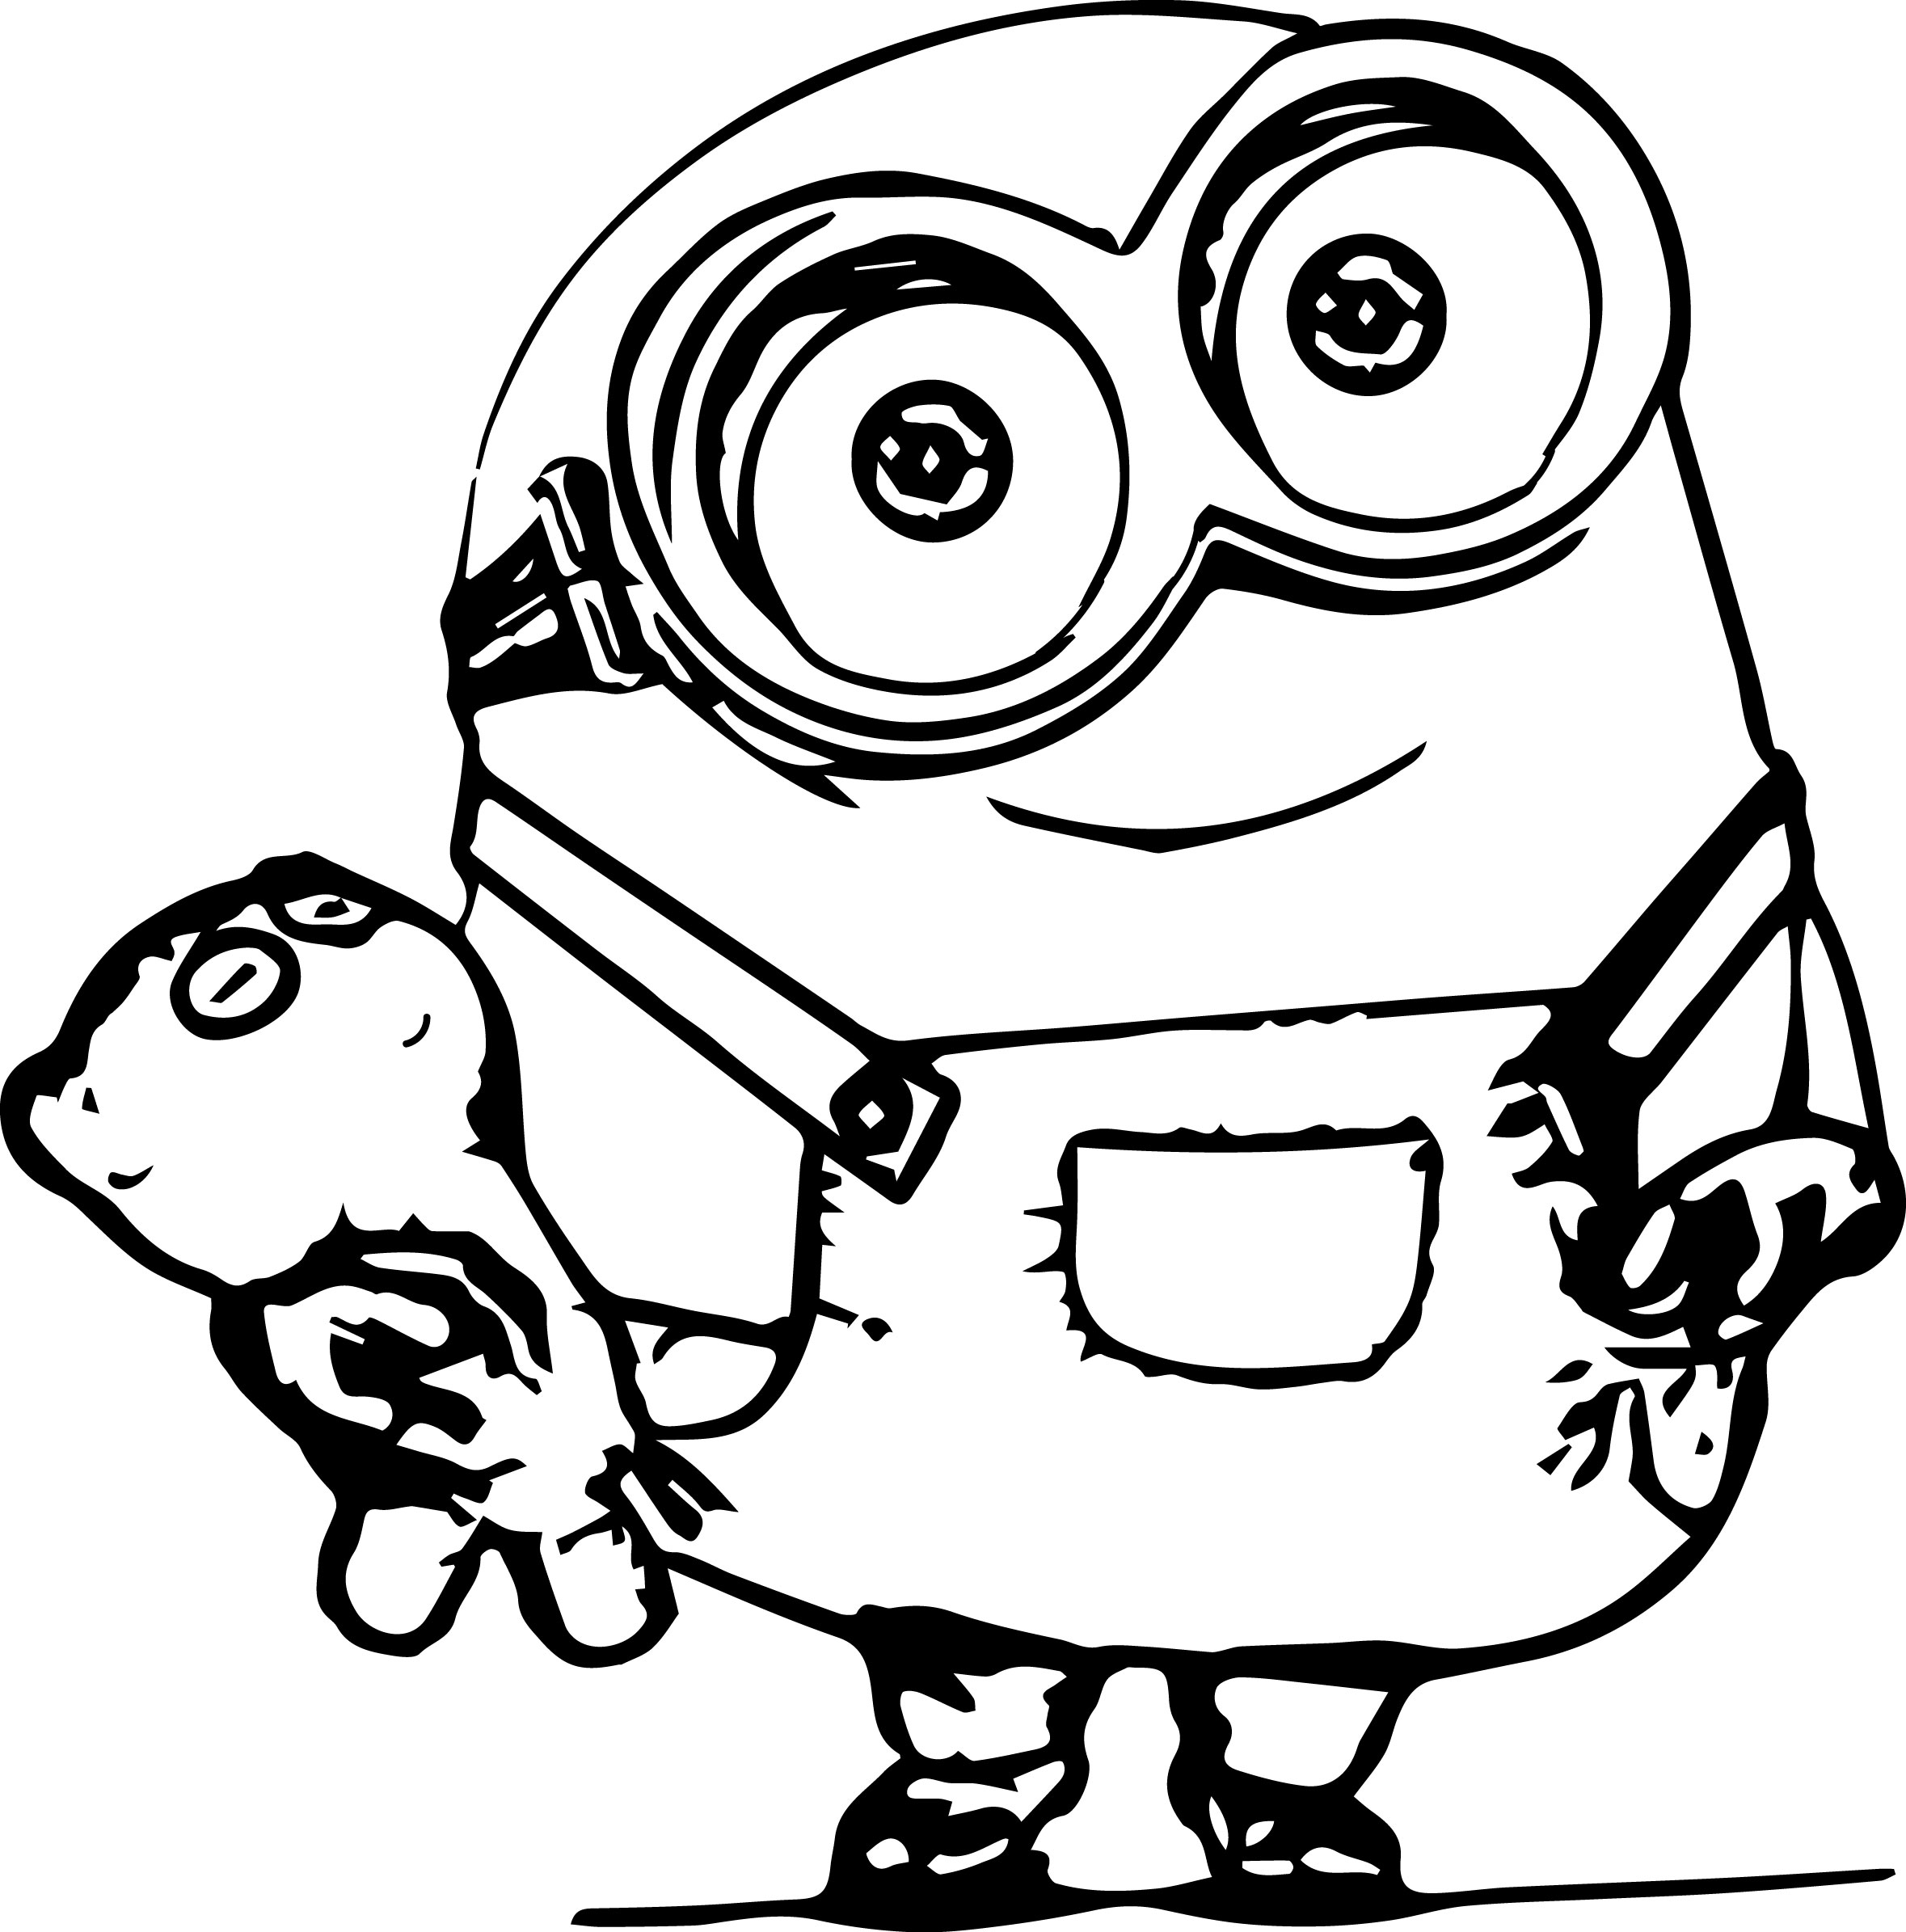 coloring minion pages minion coloring pages best coloring pages for kids minion pages coloring